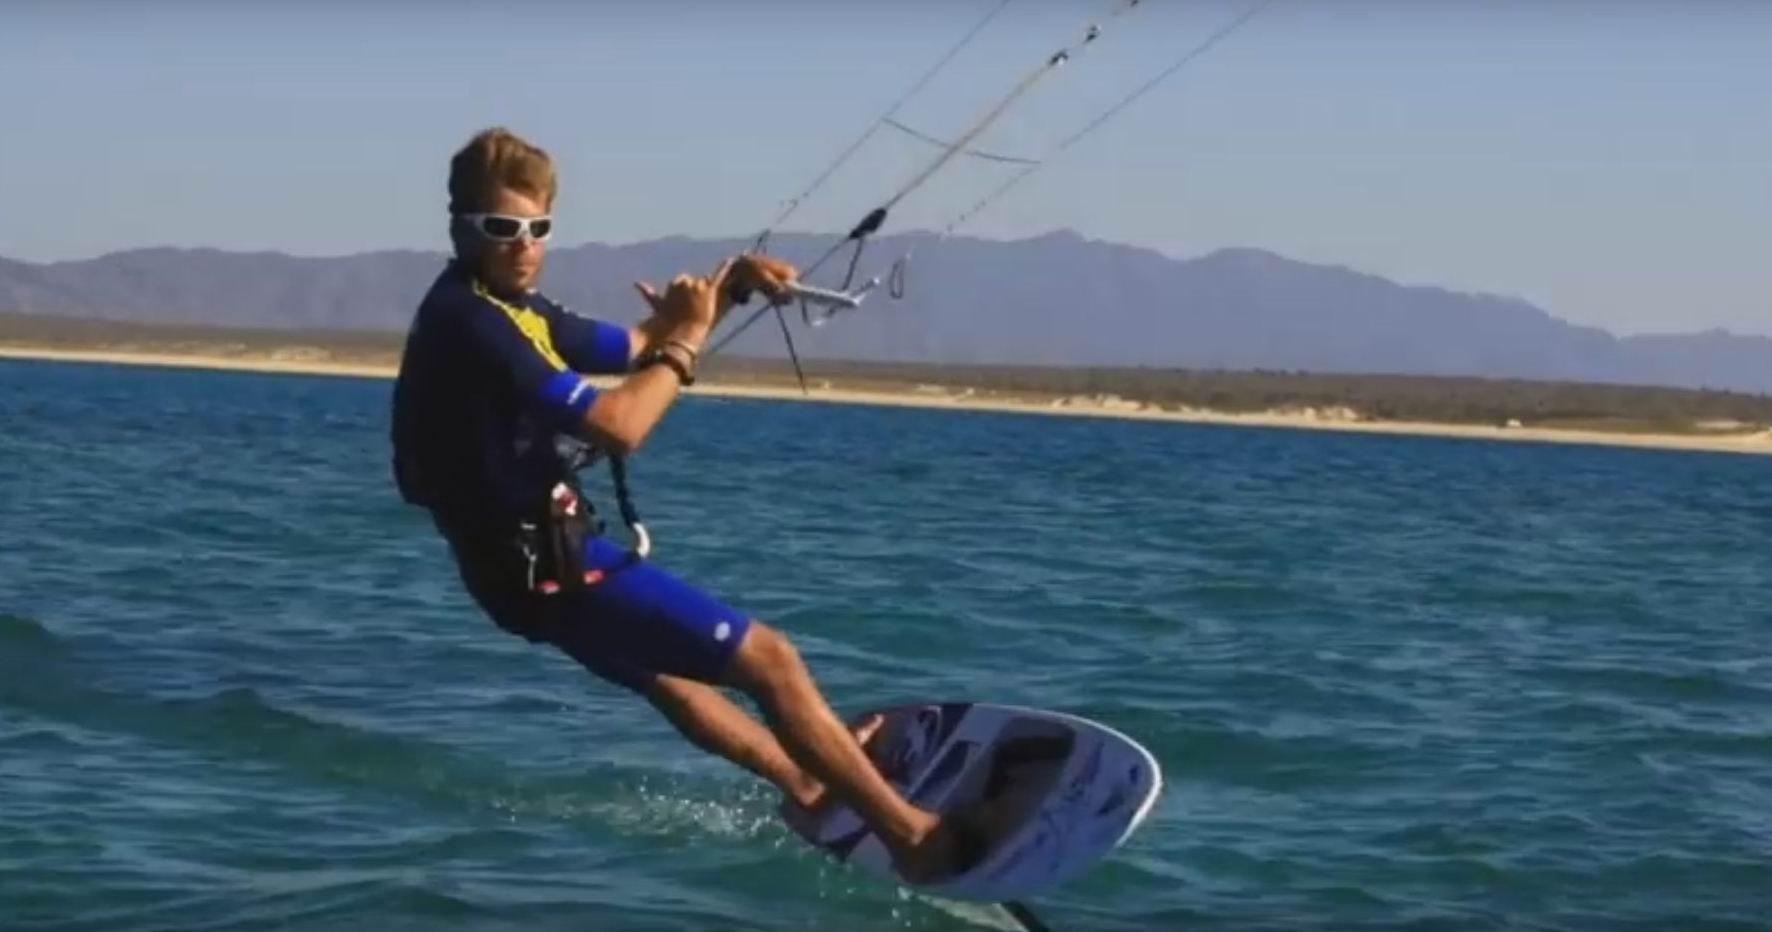 The HydroFoil Pro Tour is coming to Rockingham.